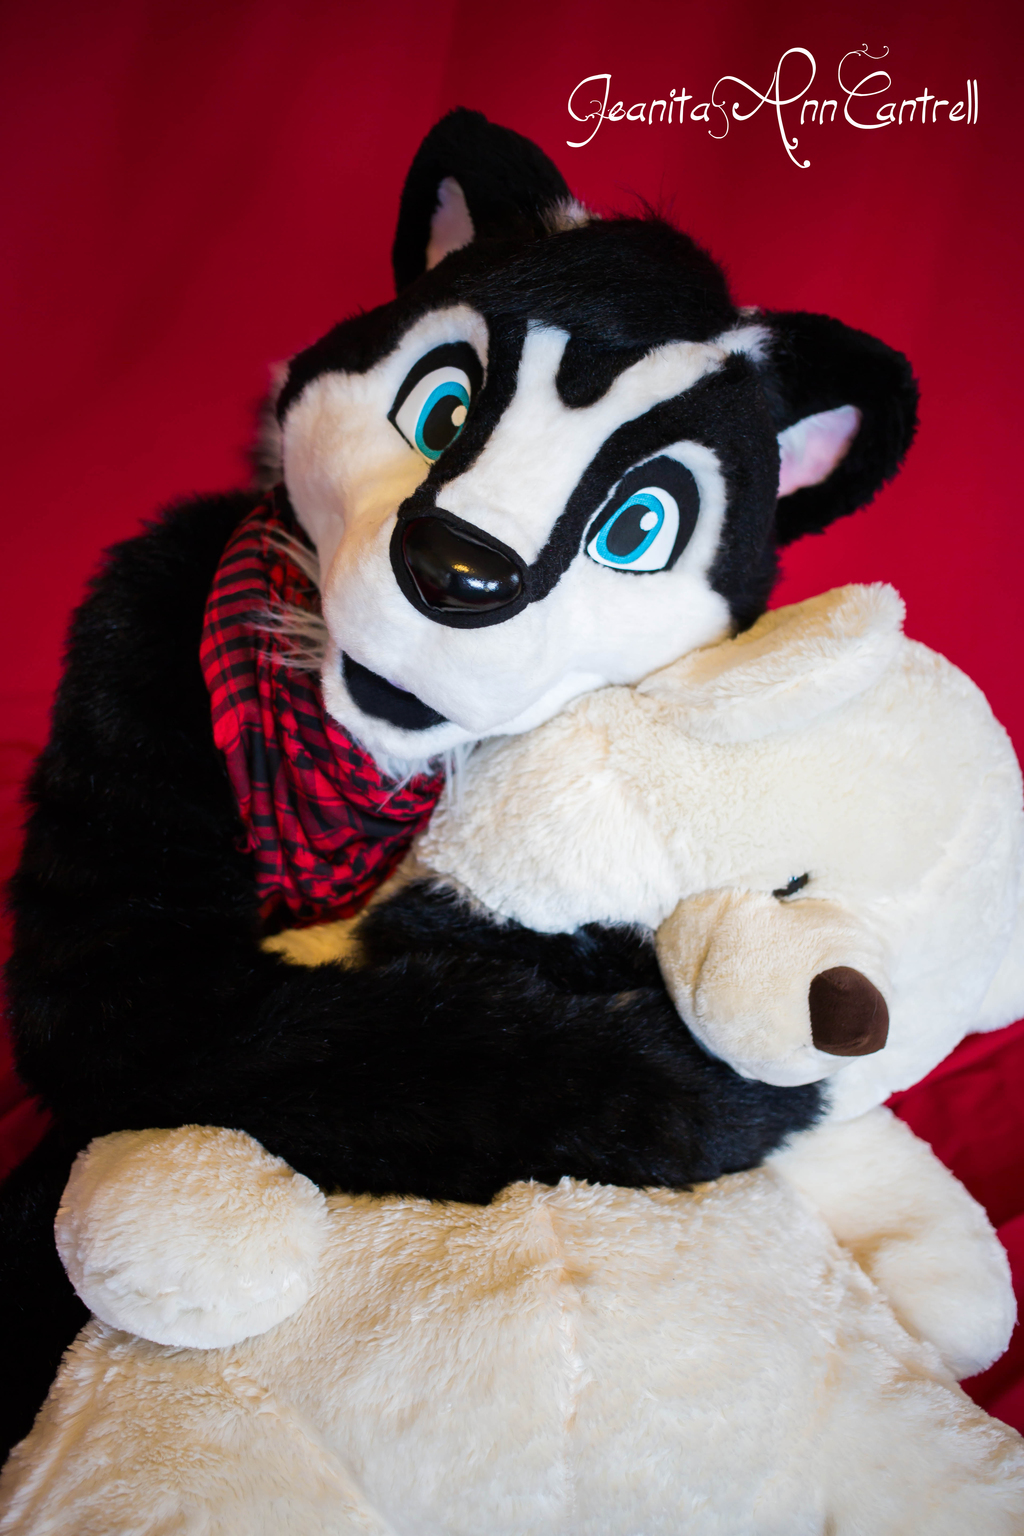 Most recent image: But I Love My Teddy!